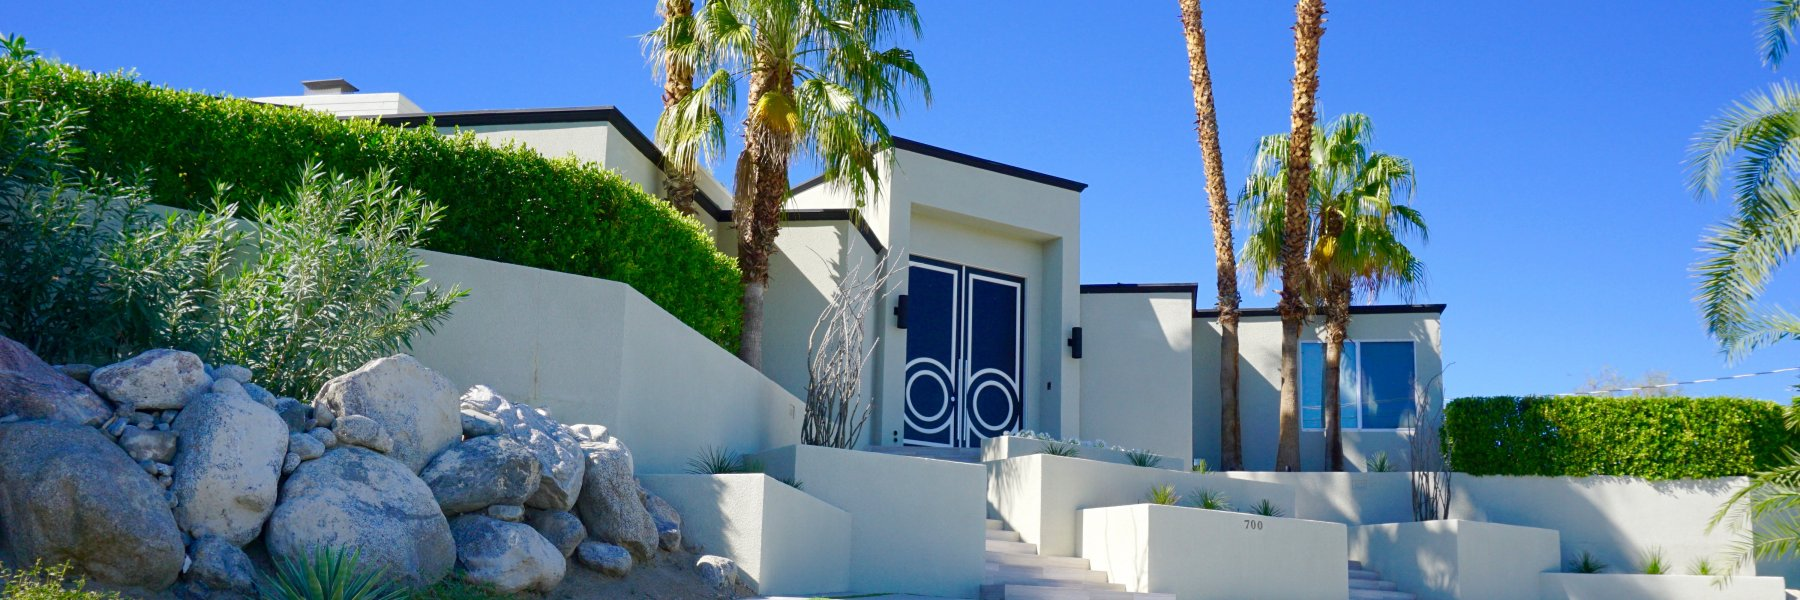 Little Tuscany is a community of homes in Palm Springs California